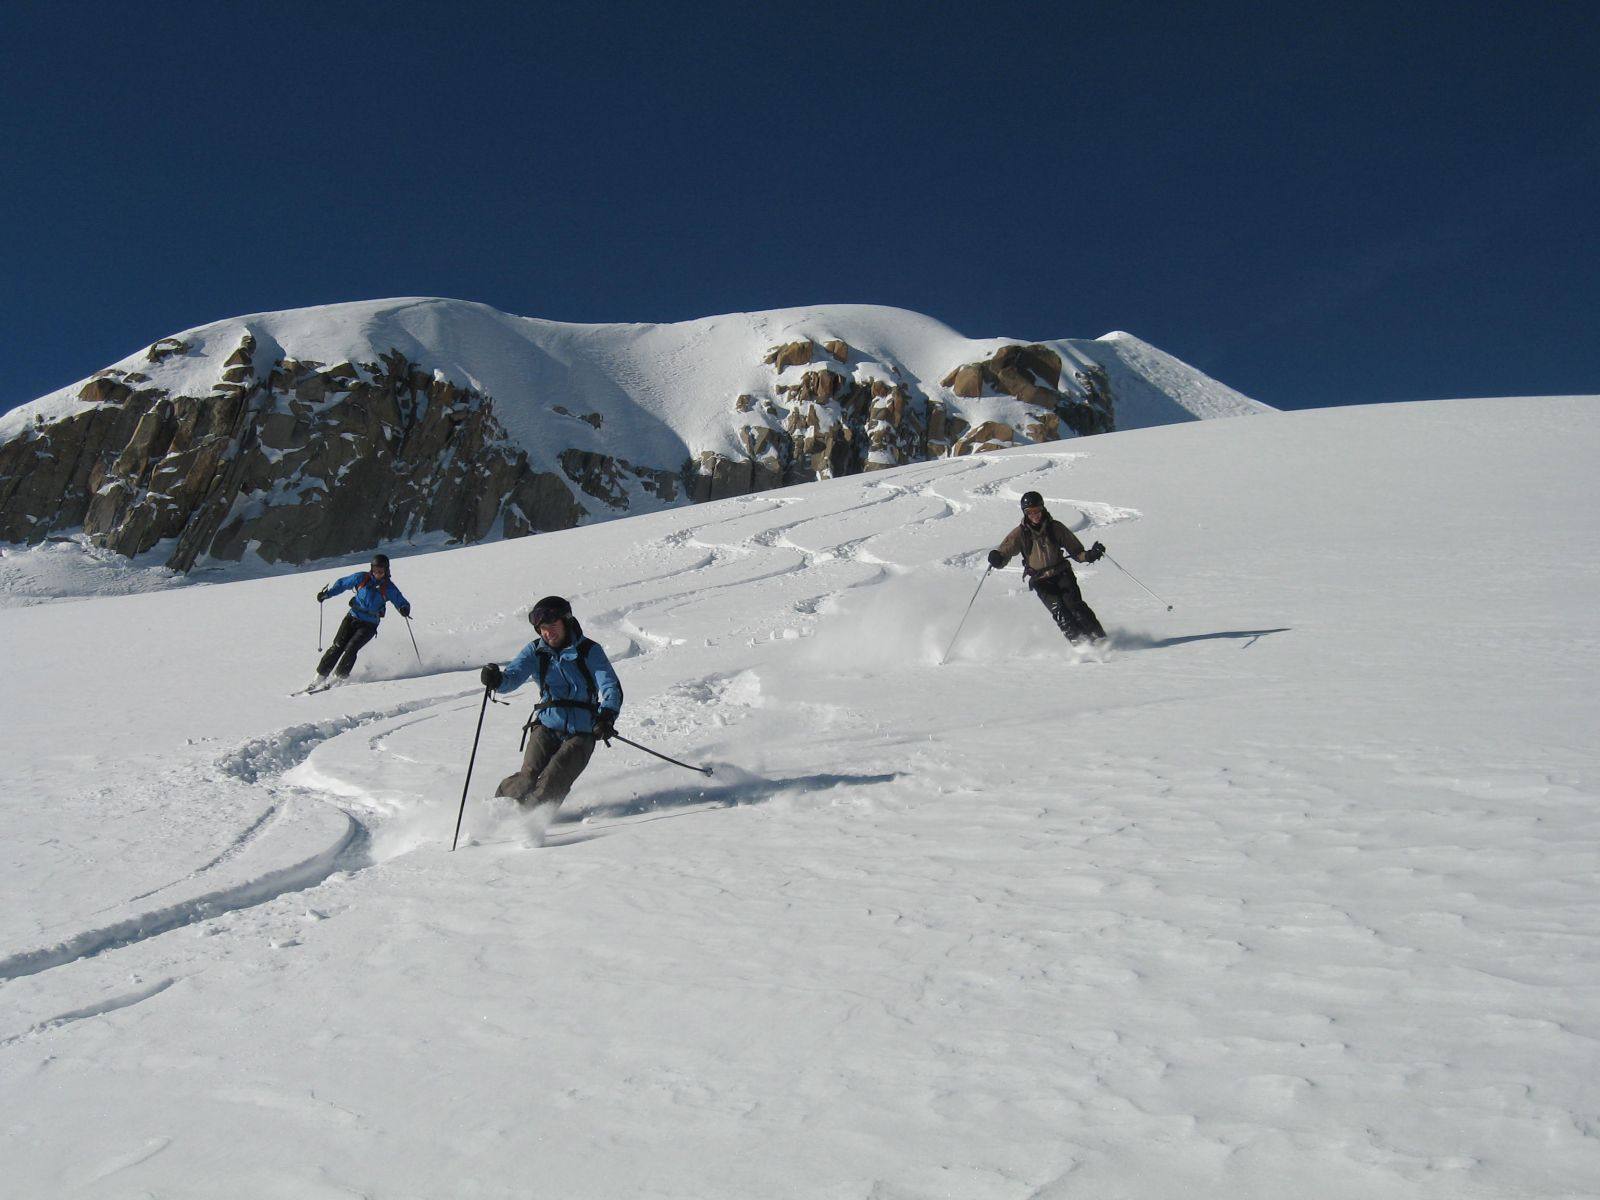 fresh tracks in Vallee Blanche